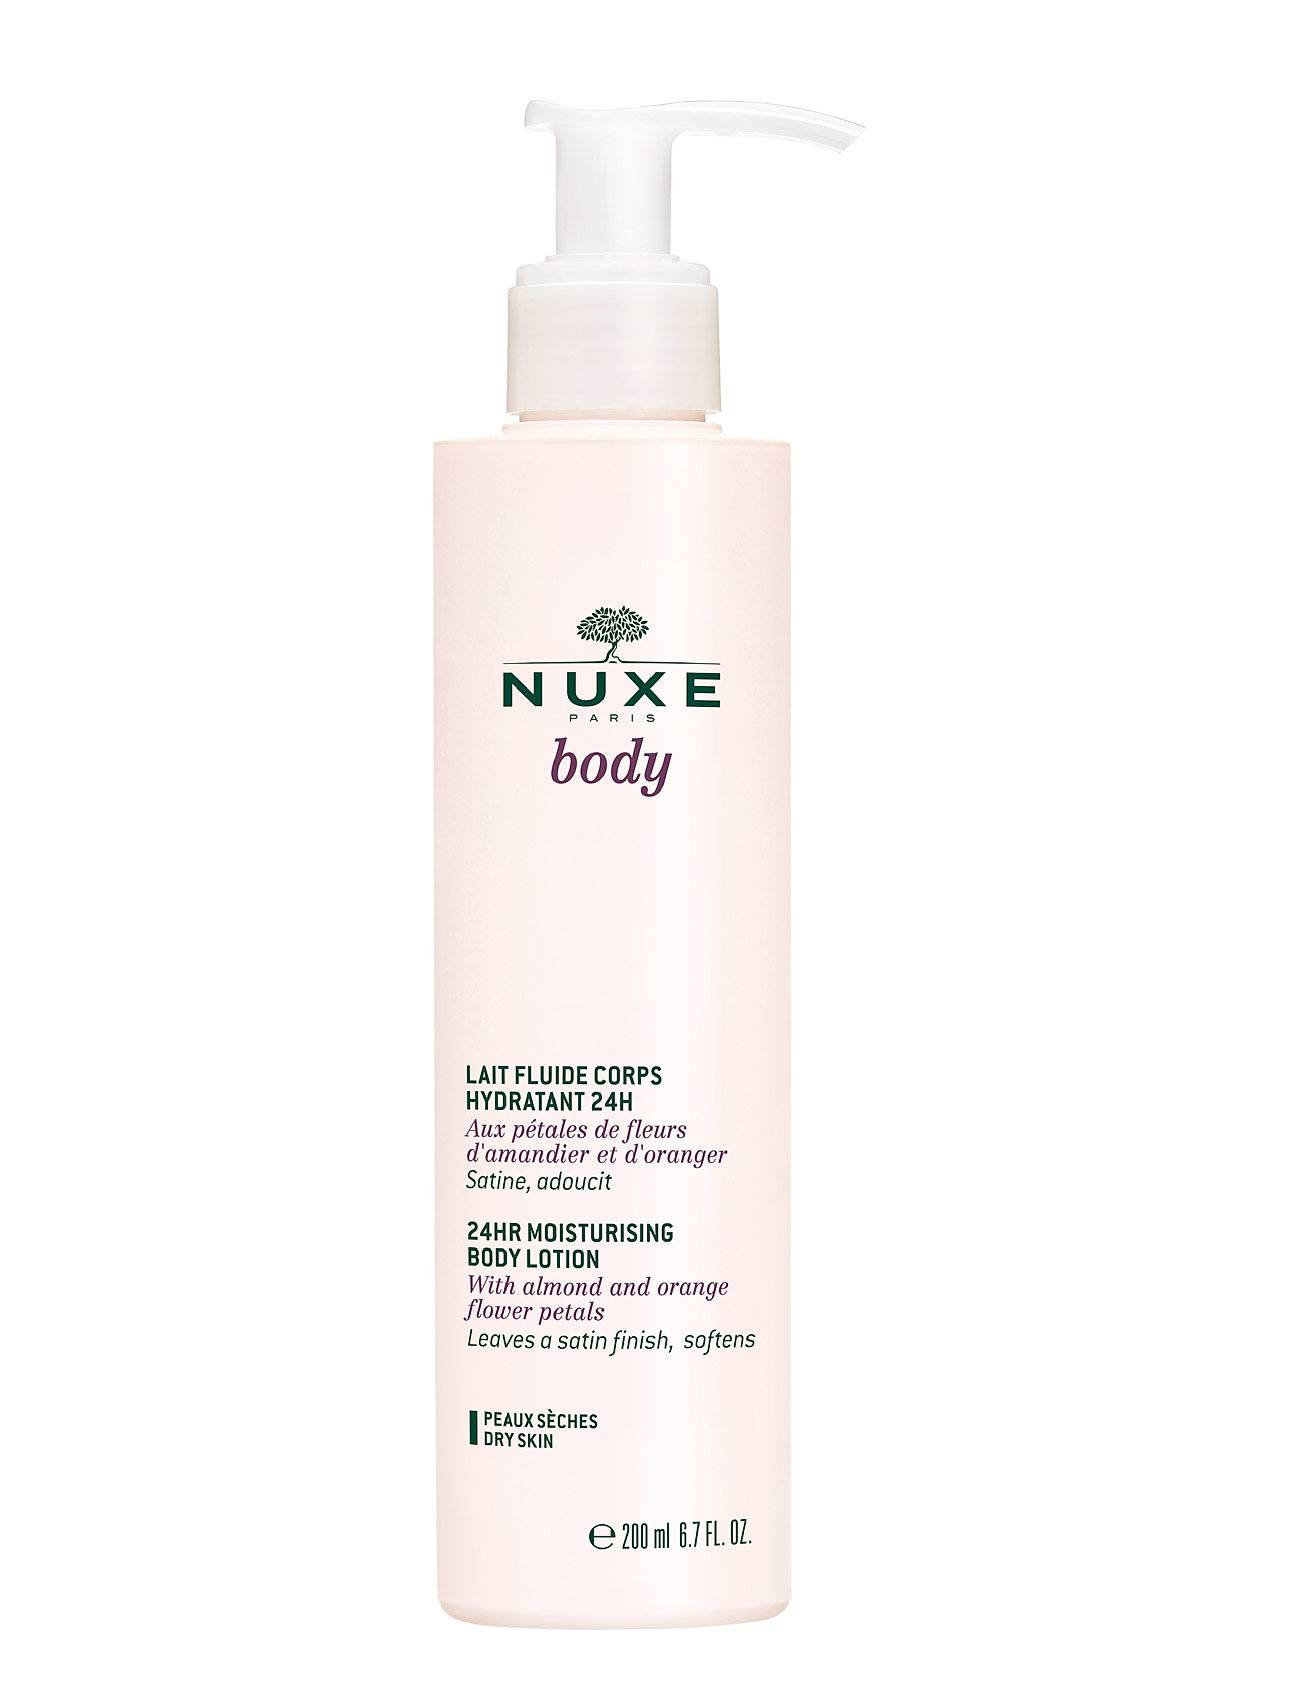 NUXE Moisturizing Body Lotion 24h